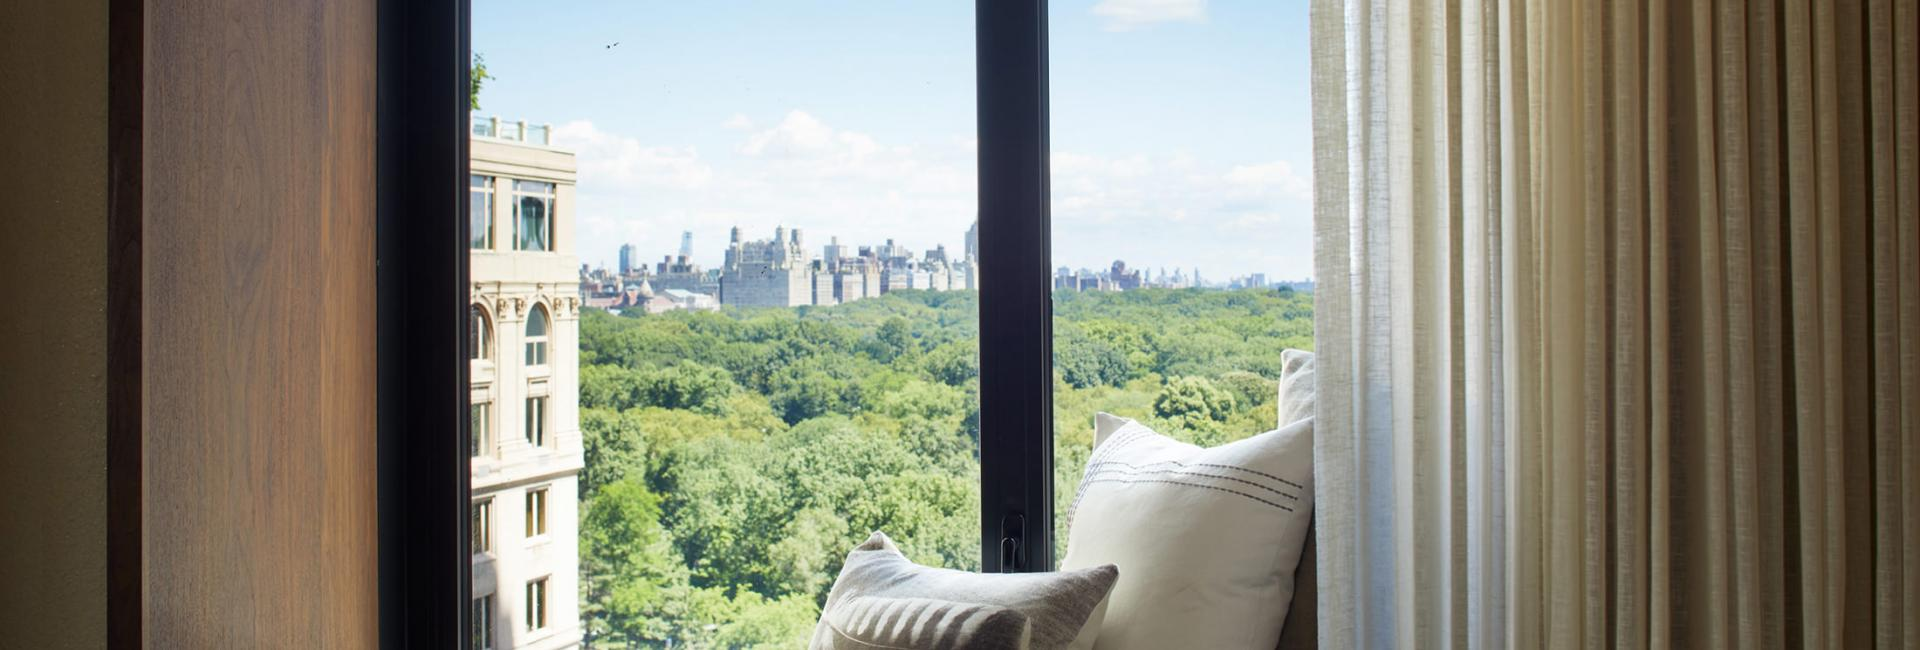 1 Hotel Central Park Guestroom Window Nook with Park View